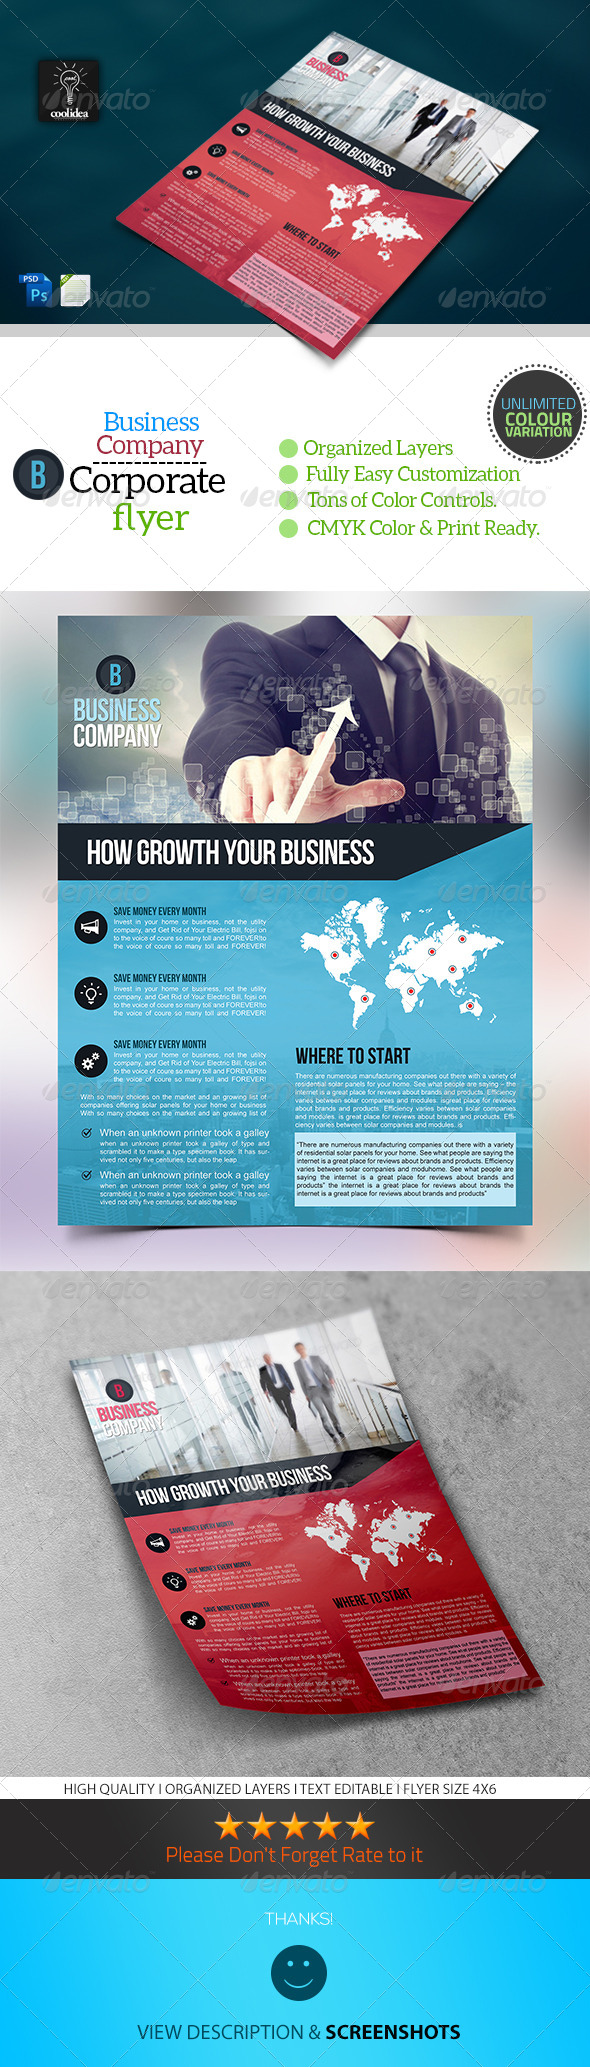 GraphicRiver A4 Corporate Flyer Template Business 6652612